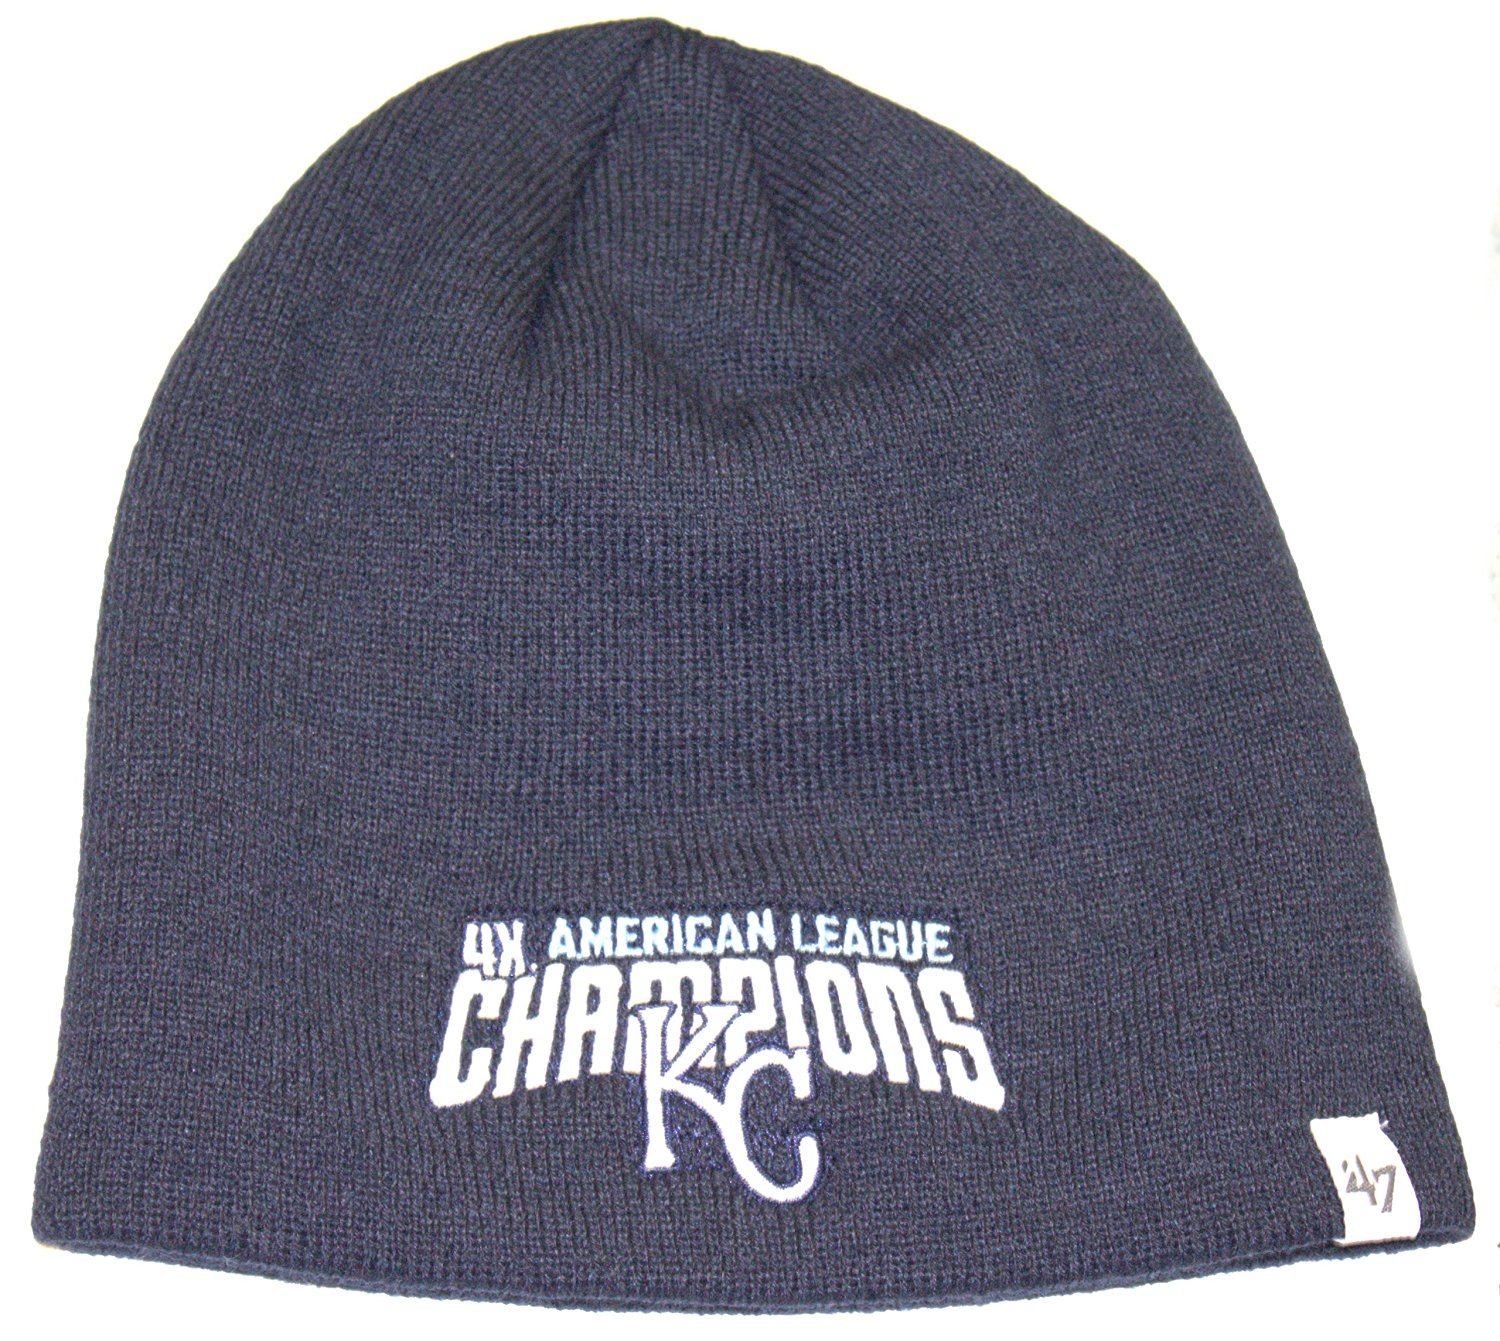 MLB Officially Licensed Kansas City Royals '47 Brand 4X American League Champions Knit Hat Beanie Cap Lid by '47 Brand